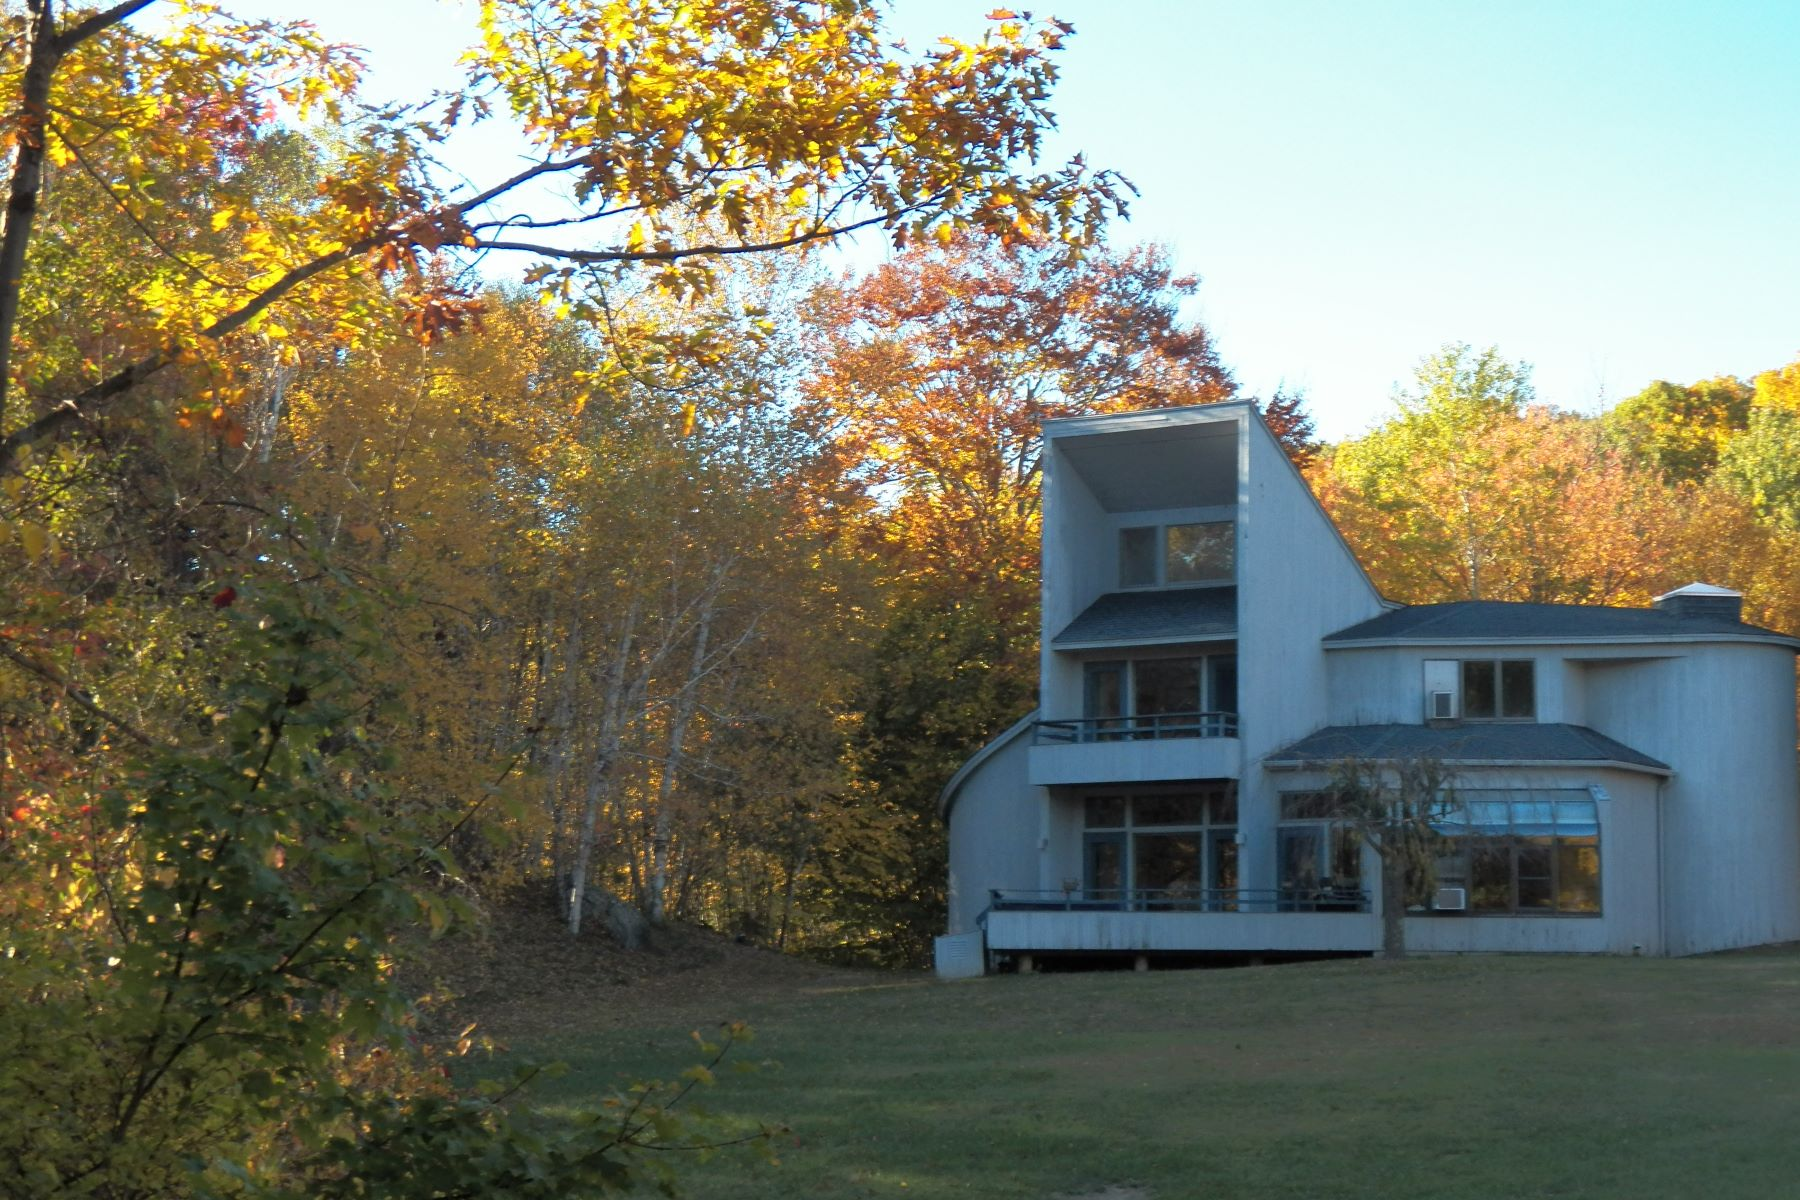 Maison unifamiliale pour l Vente à Country Contemporary 47 Rabbit Hill Rd Washington, Connecticut, 06777 États-Unis